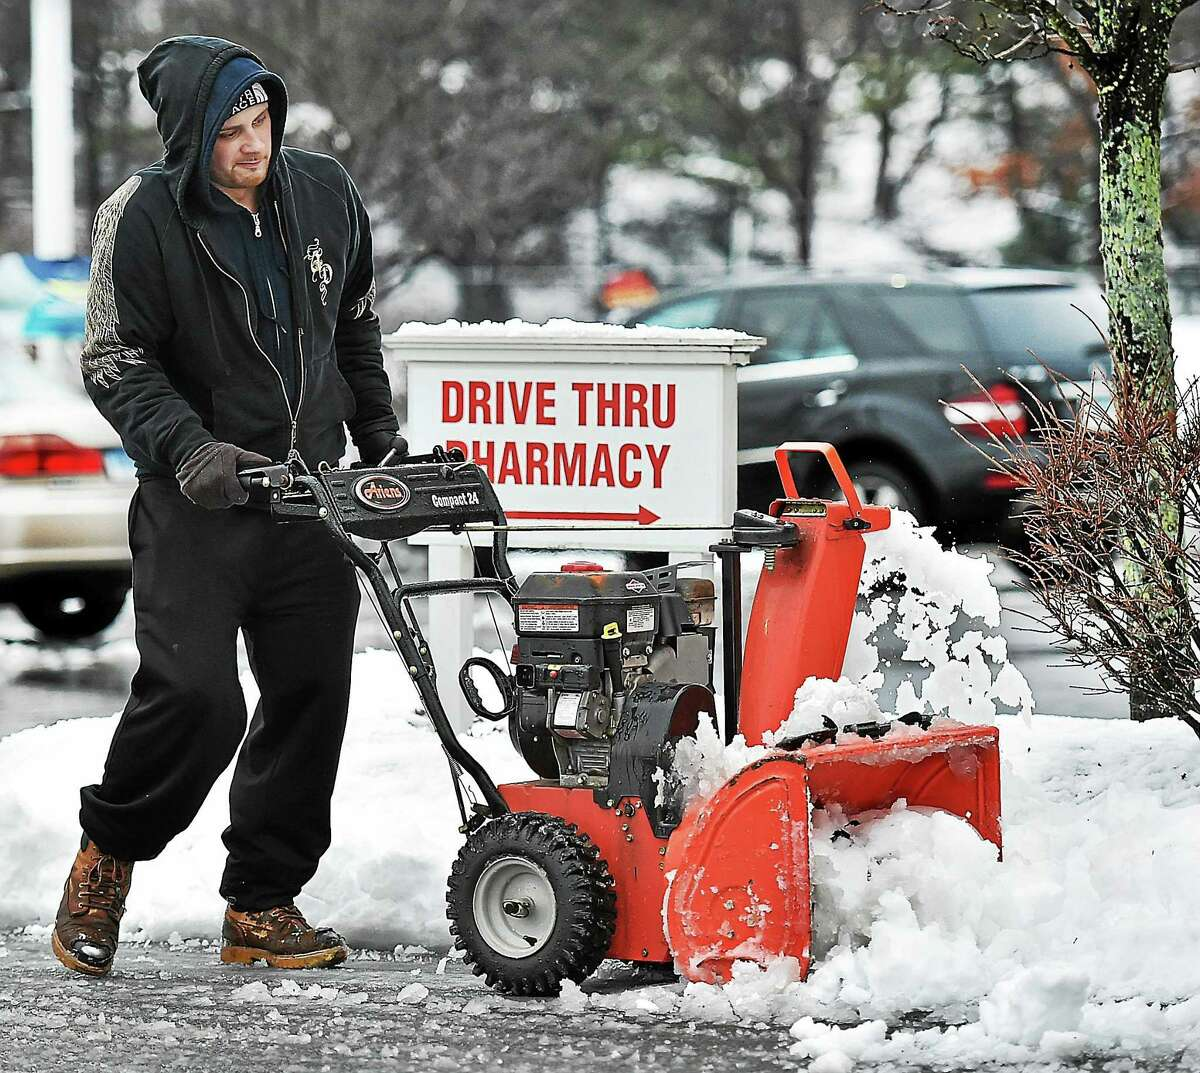 Kiel Loricco, employed by Paradise Landscaping in New Haven uses an Airens snow blower to clear the sidewalks at the CVS on the corner of Lakeslee and Washington avenue in North Haven on Saturday, January 24, 2015. Loricco said the job will take about two hours to do the CVS and the complex next door.